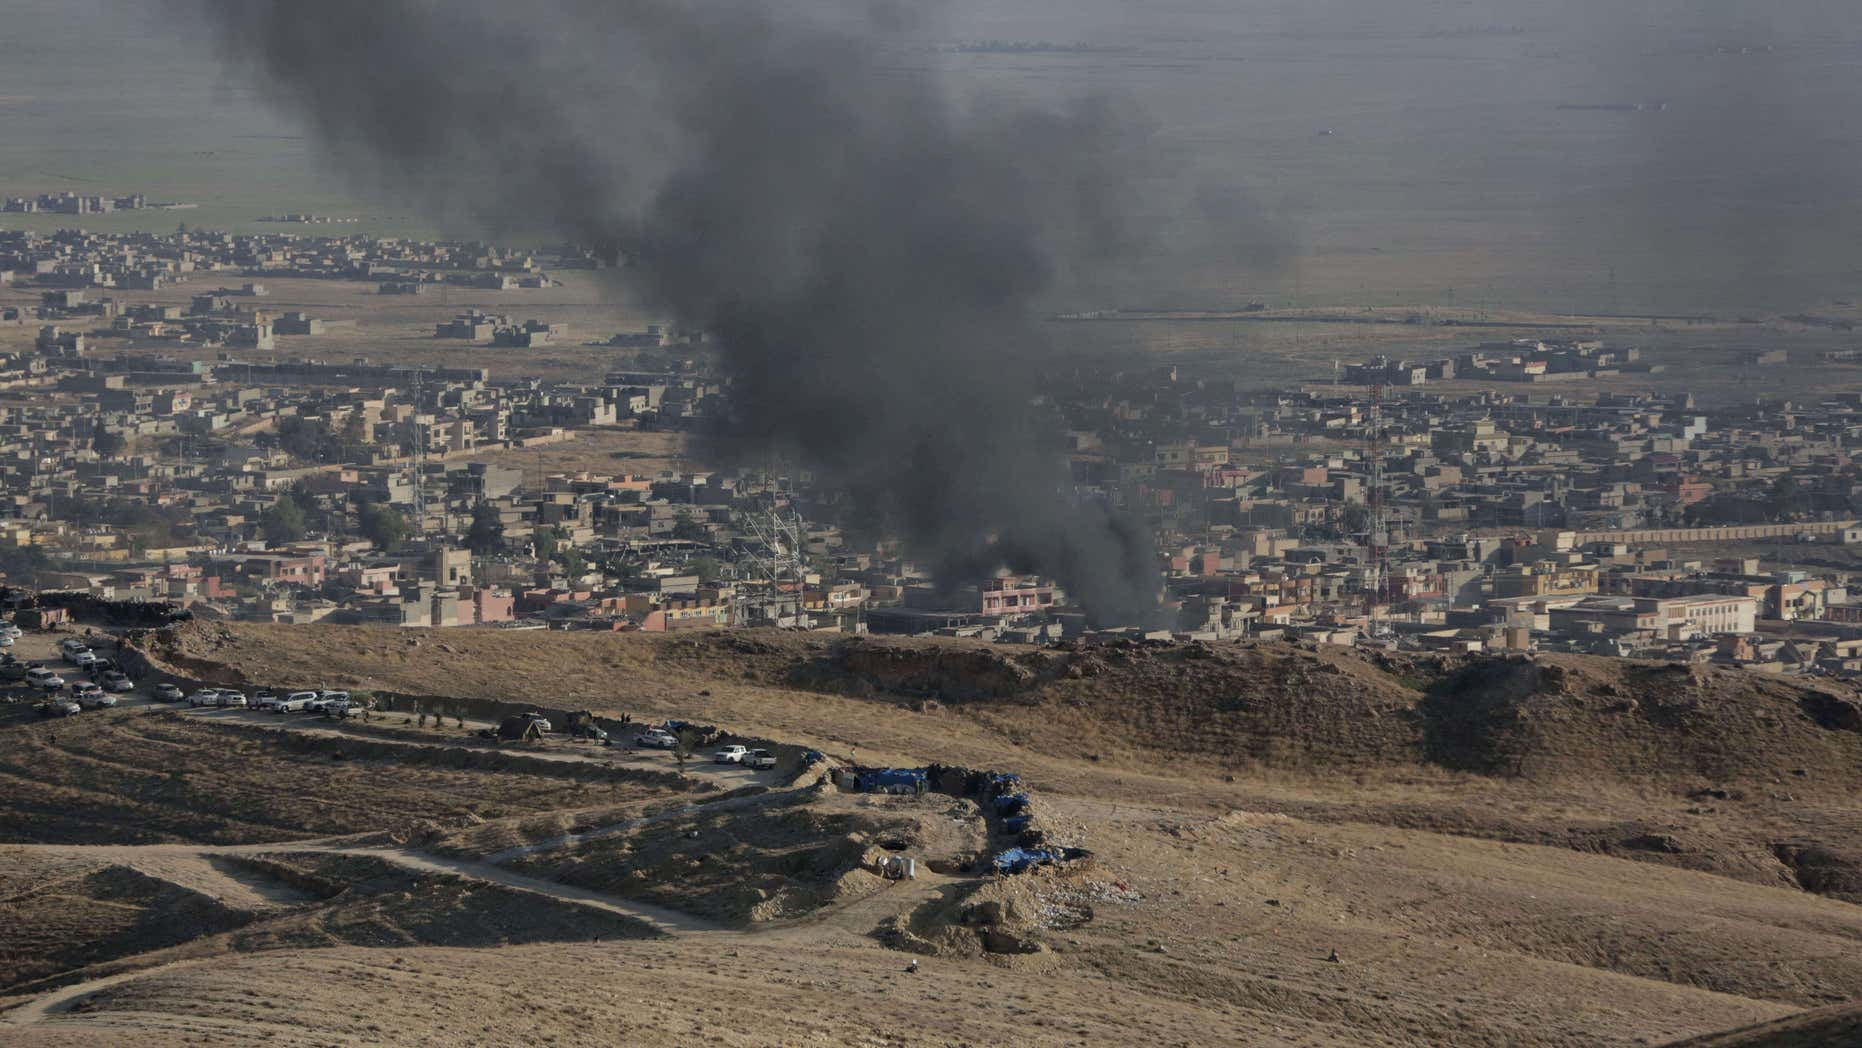 Nov. 12, 2015: Smoke rises over Sinjar, northern Iraq from oil fires set by Islamic State militants as Kurdish Iraqi fighters, backed by U.S.-led airstrikes, launch a major assault.